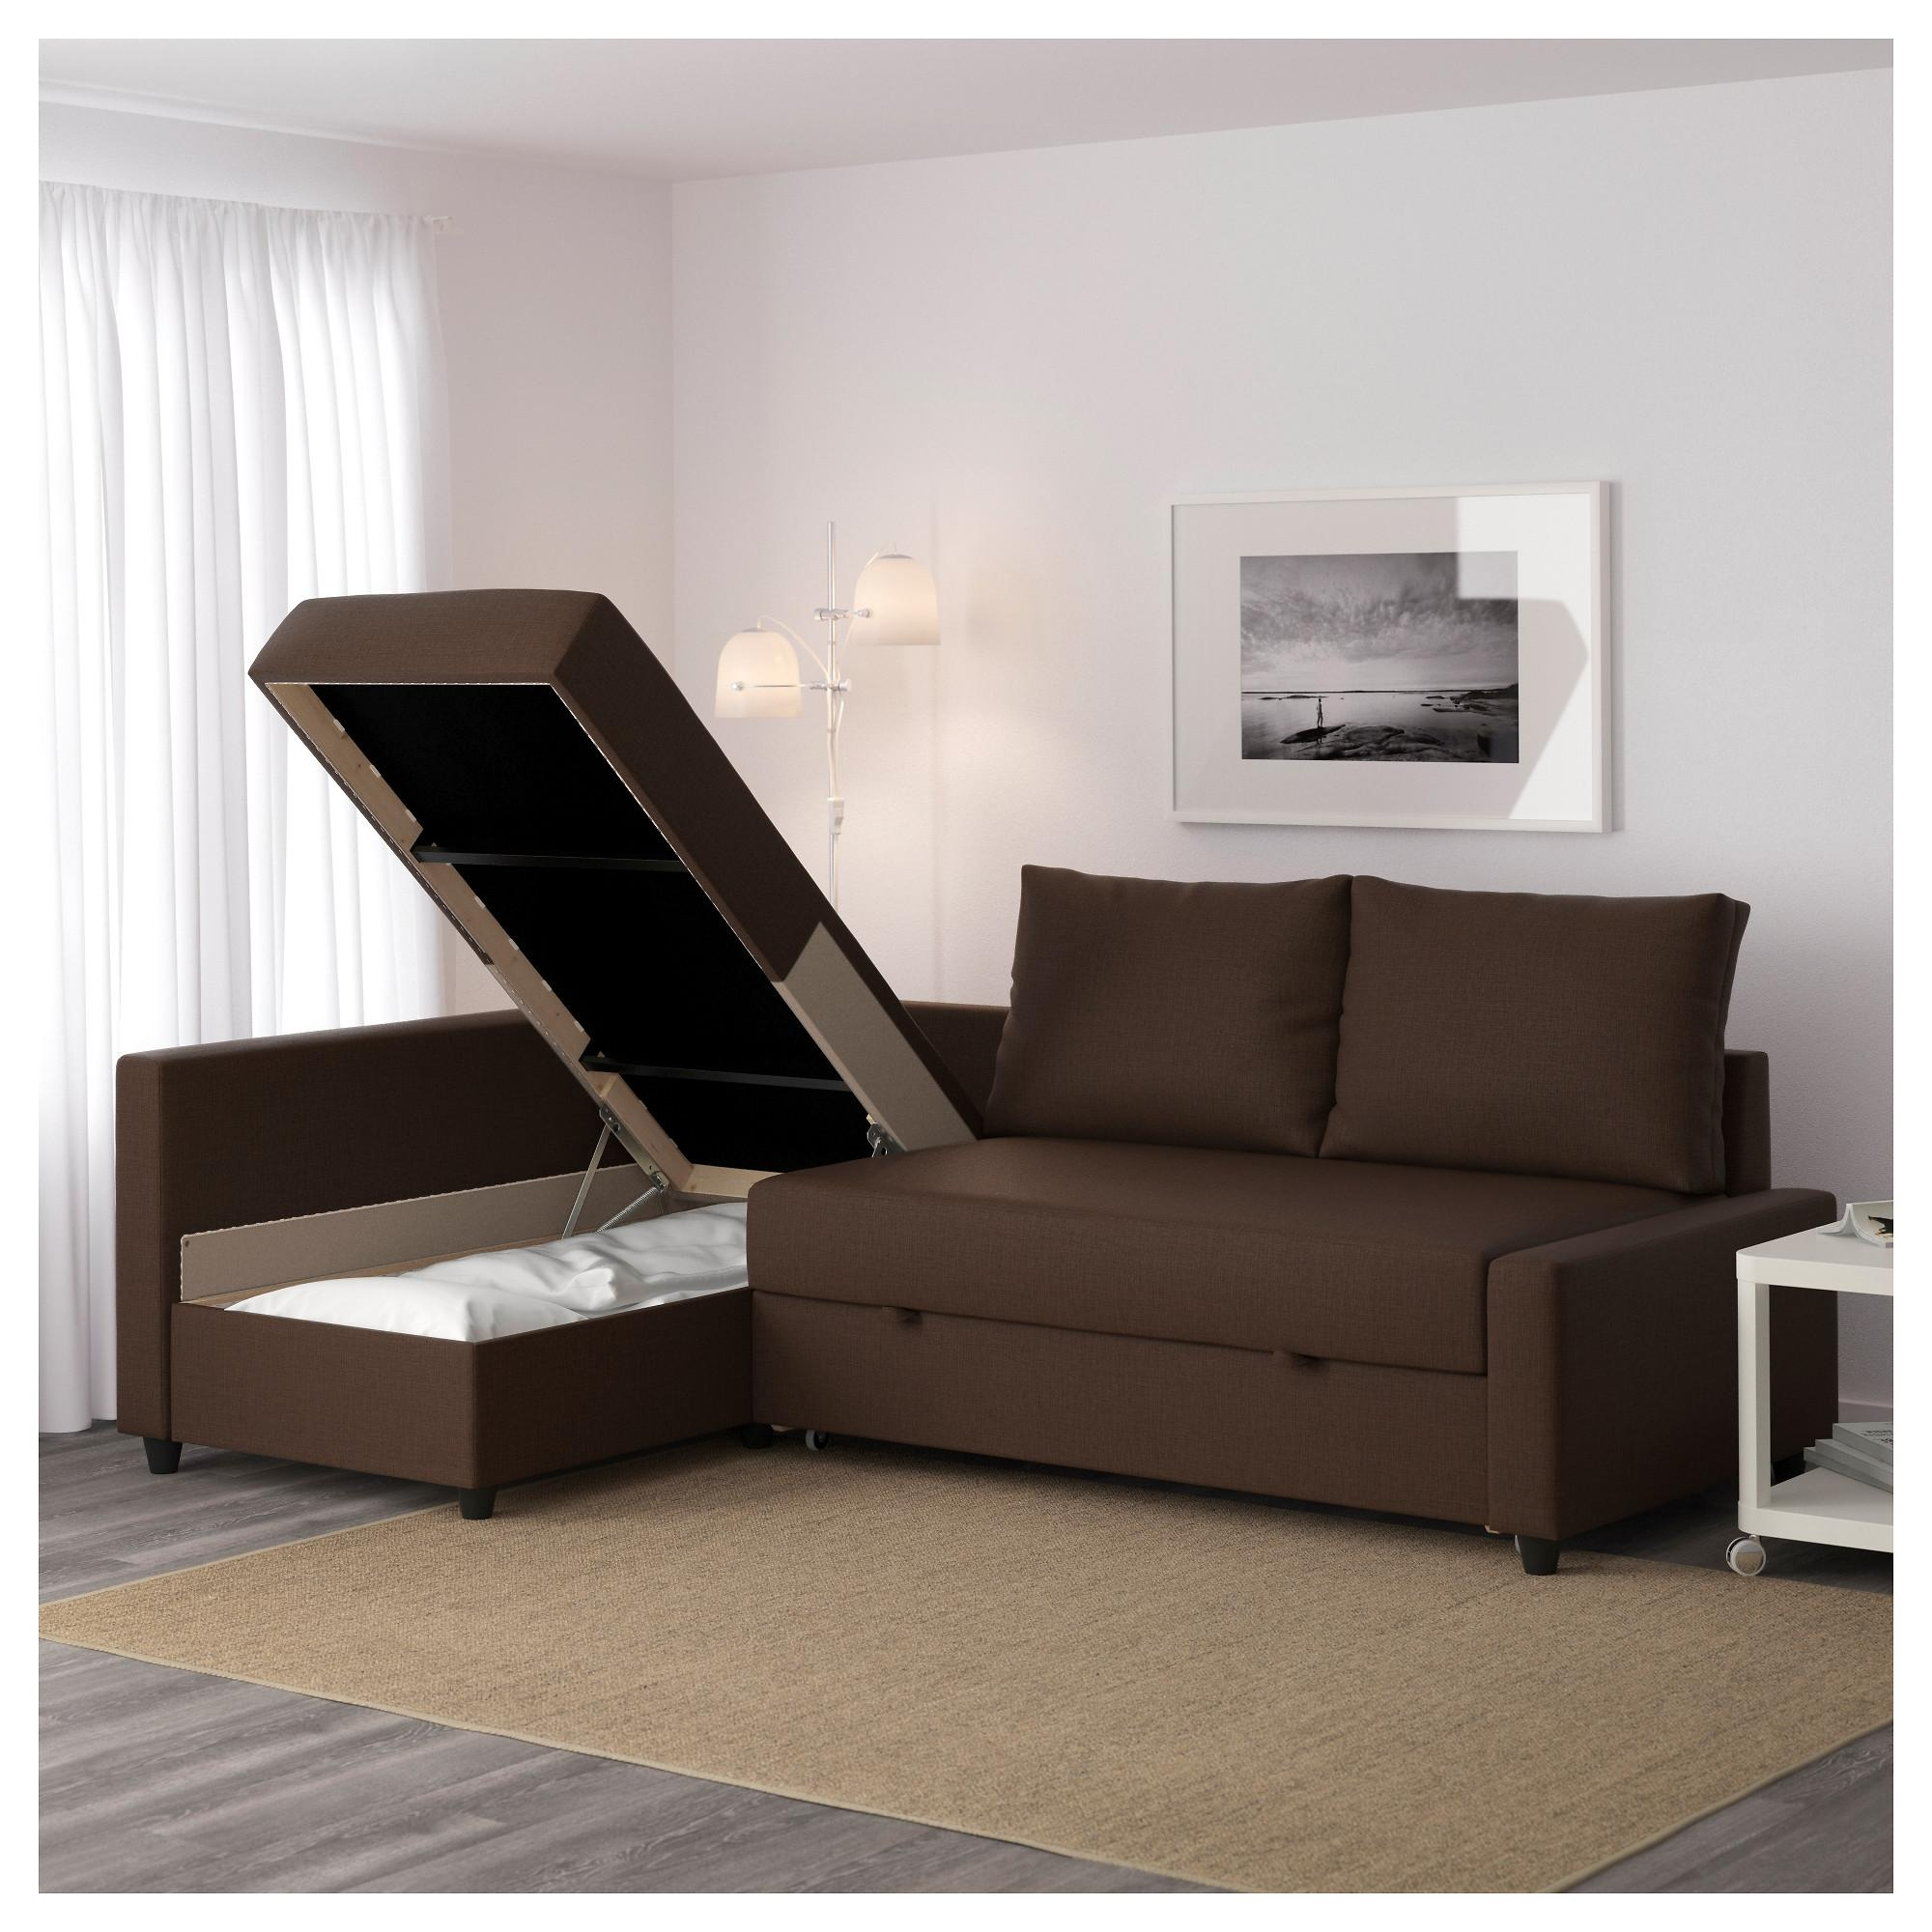 Sofas Center : Enzo Corner Sofa Seater Pull Out Chaise On Right For Chaise Sofa Beds With Storage (Image 16 of 20)